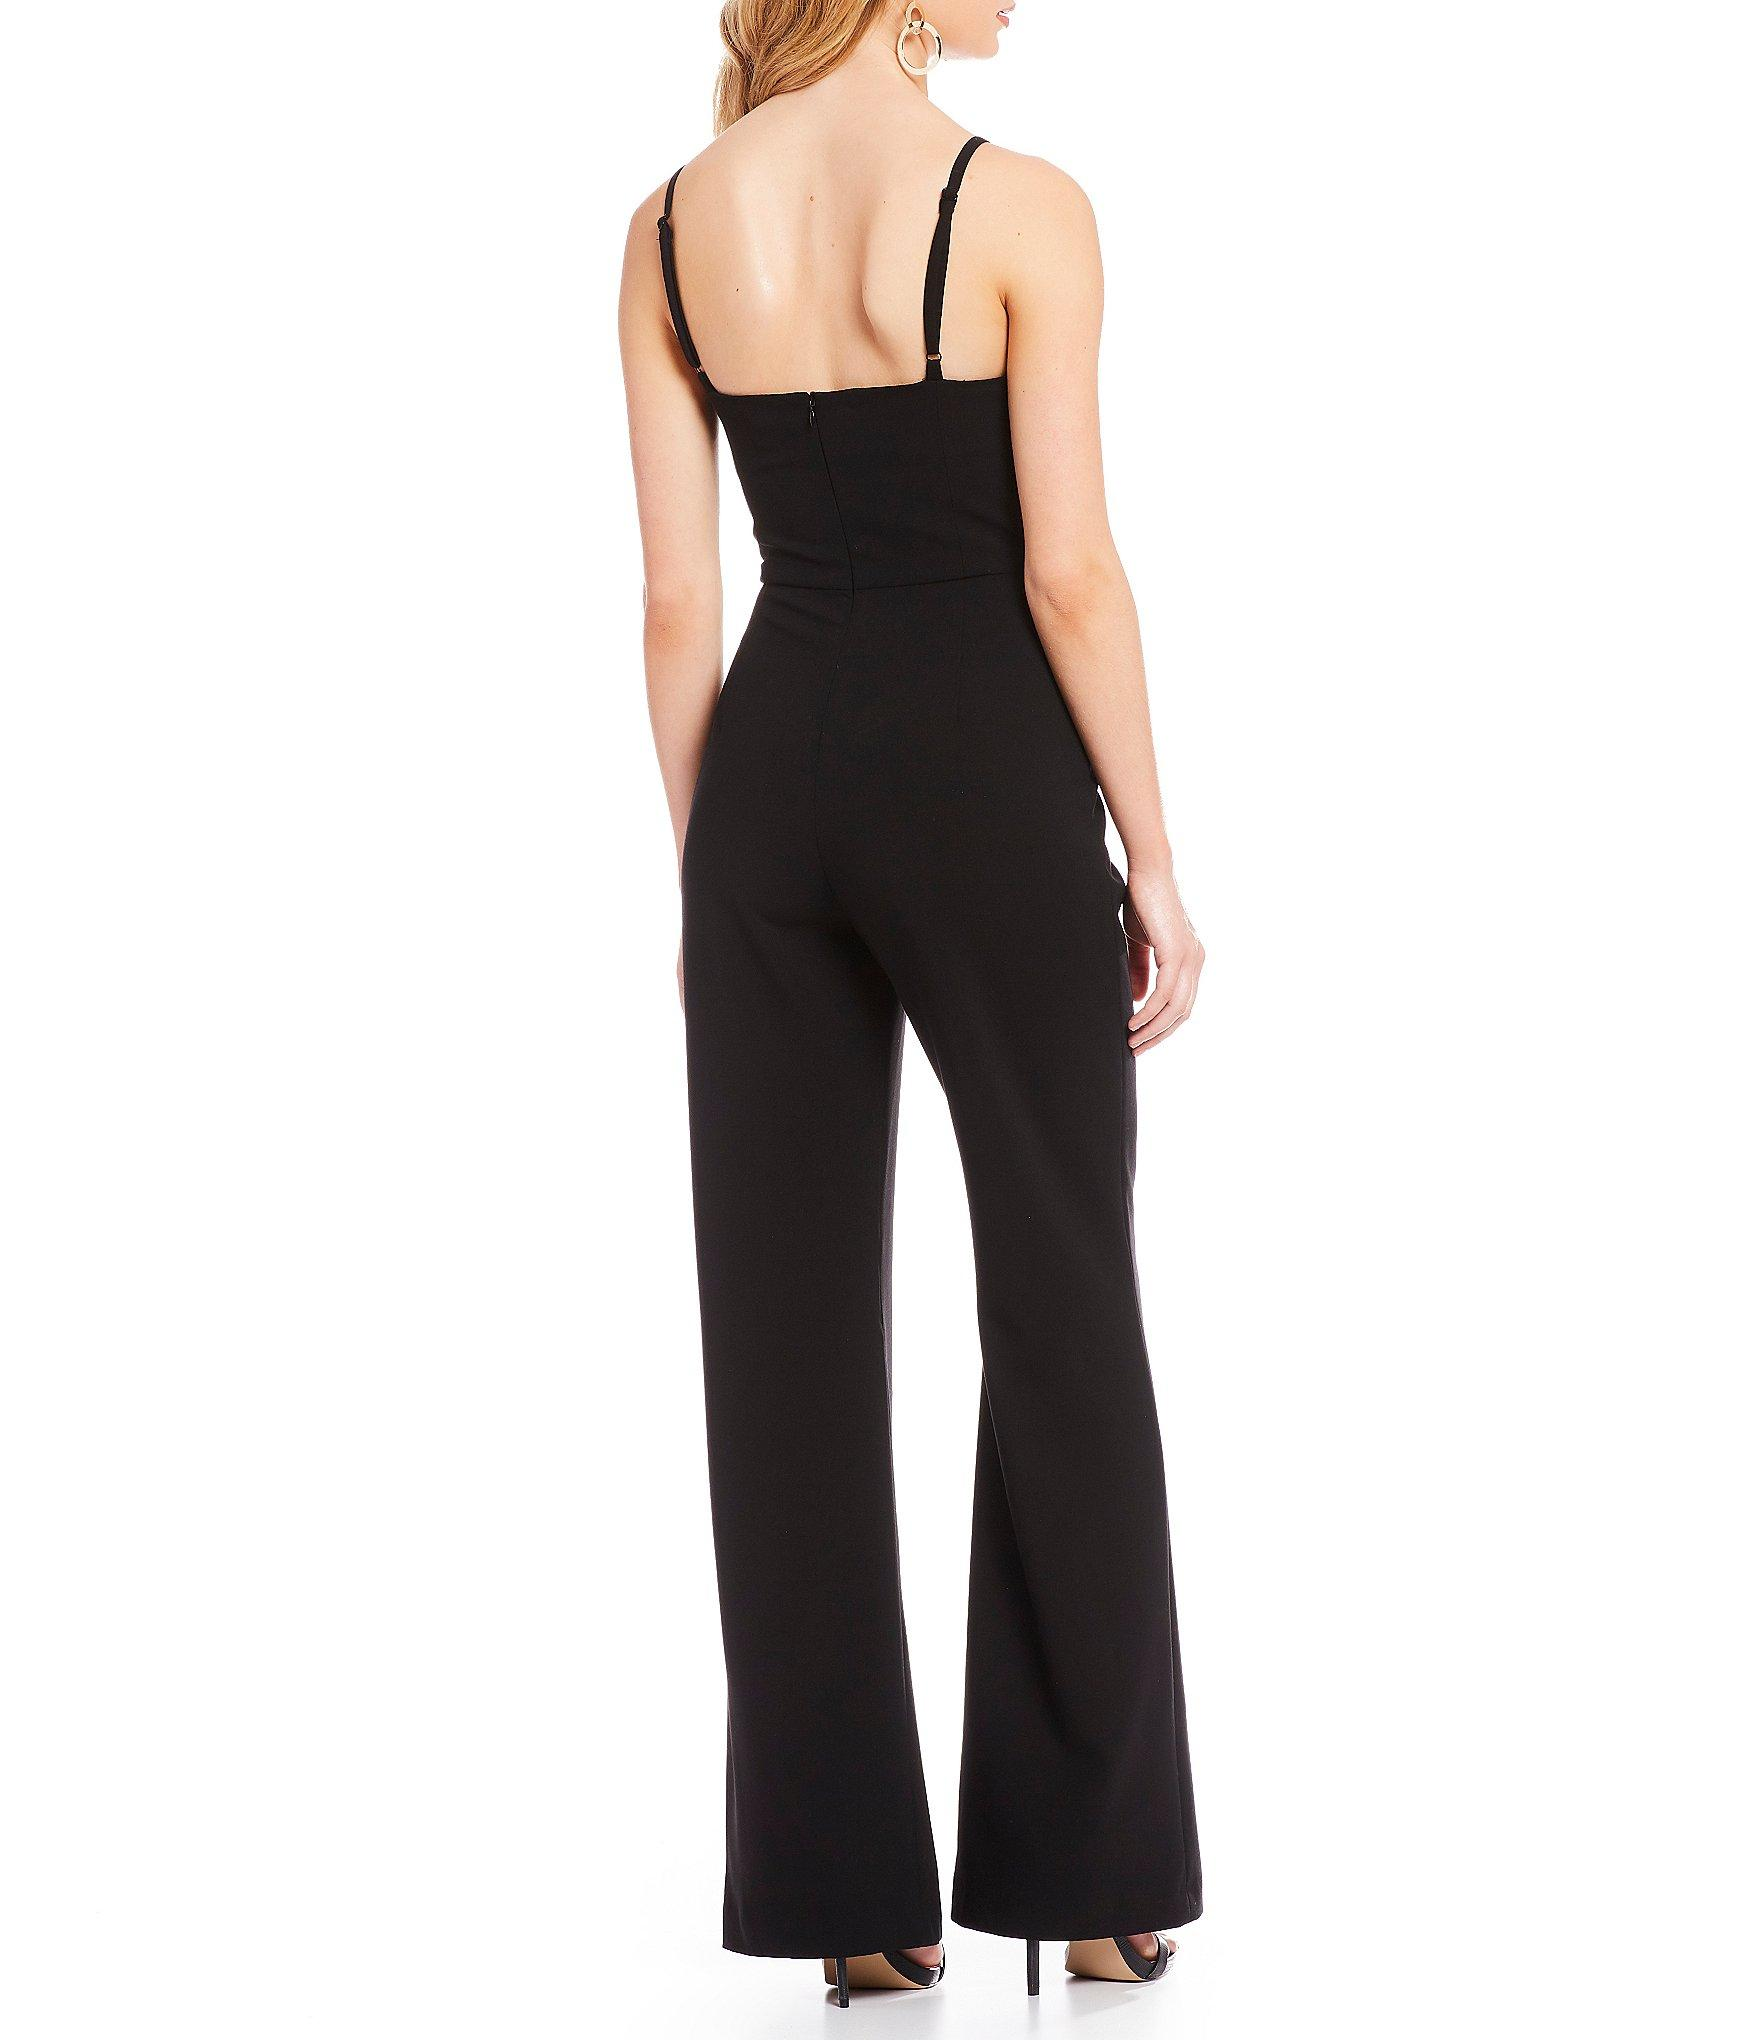 0eb38fa9bc6 French Connection - Black Whisper High Square Neck Jumpsuit - Lyst. View  fullscreen